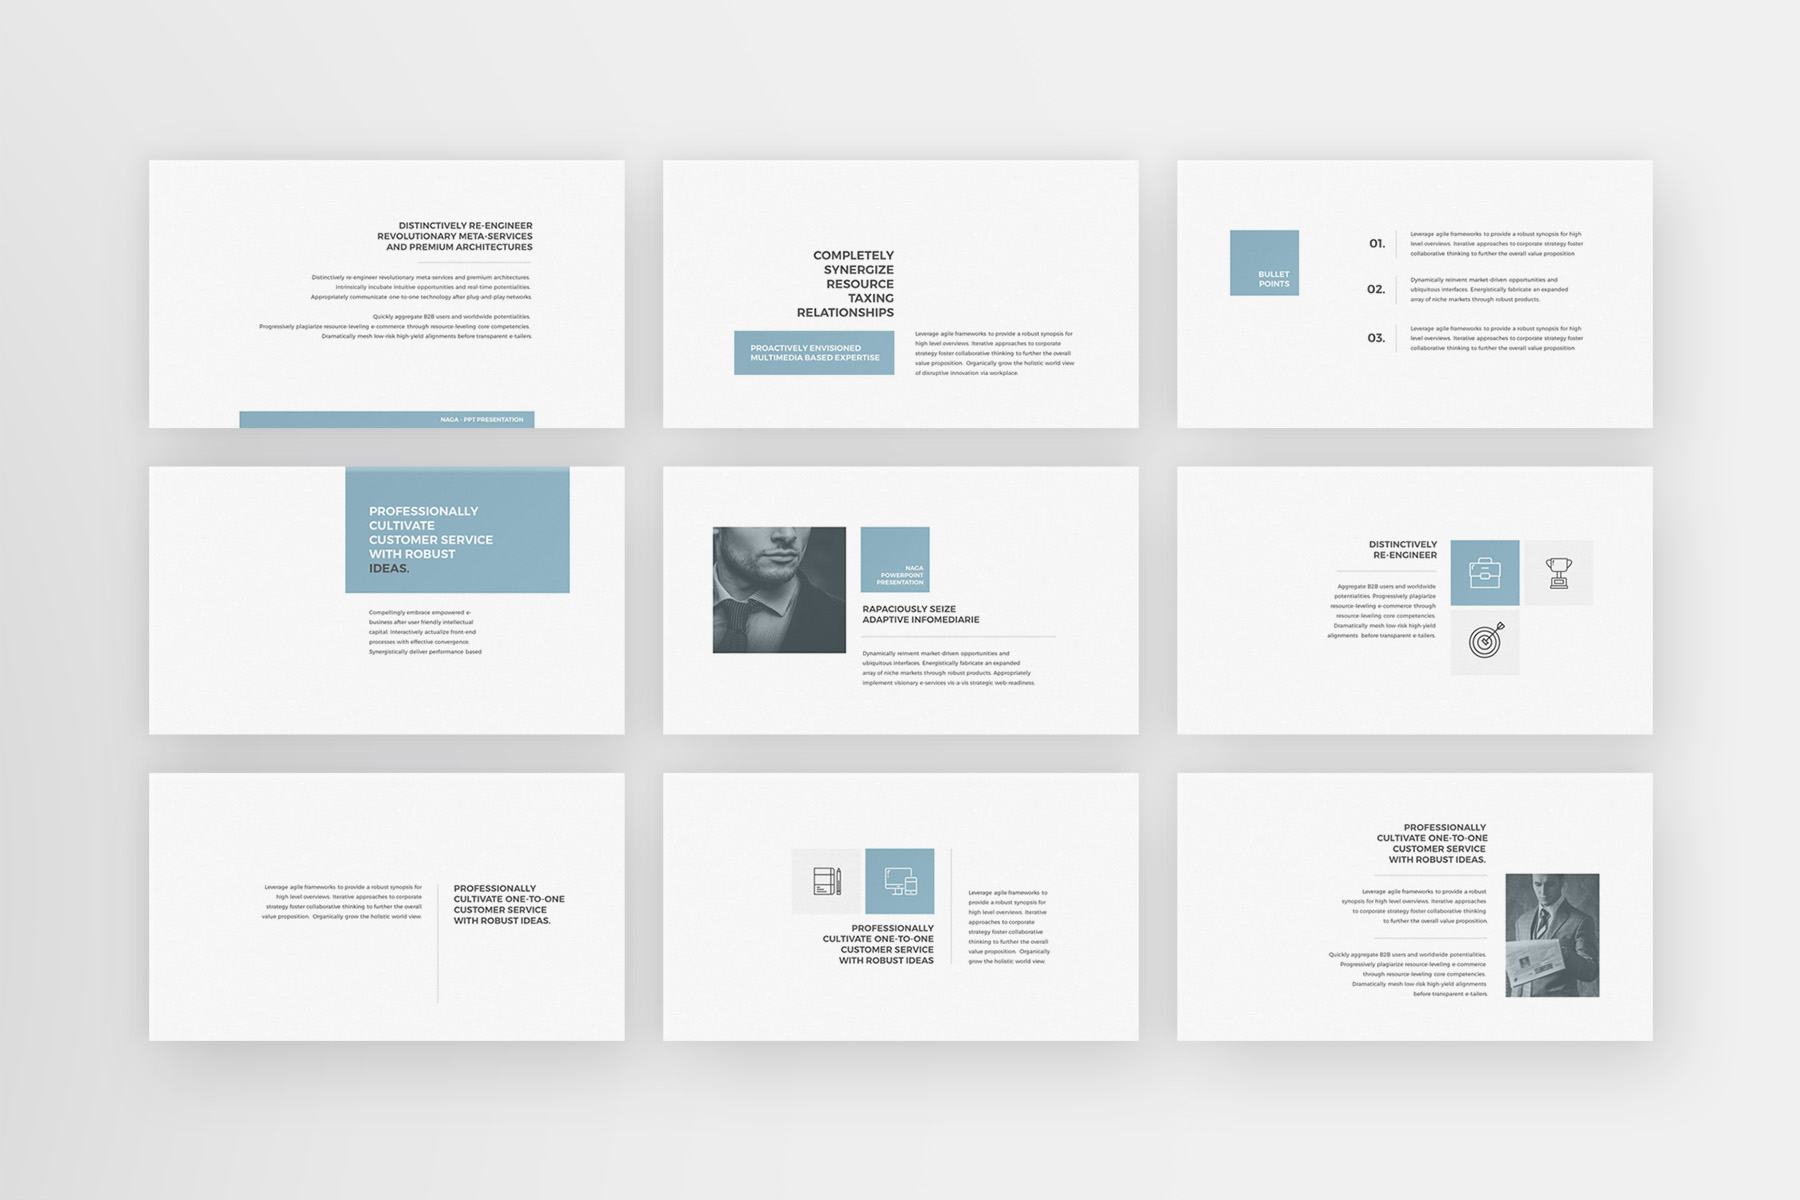 Naga - PowerPoint Template example image 6